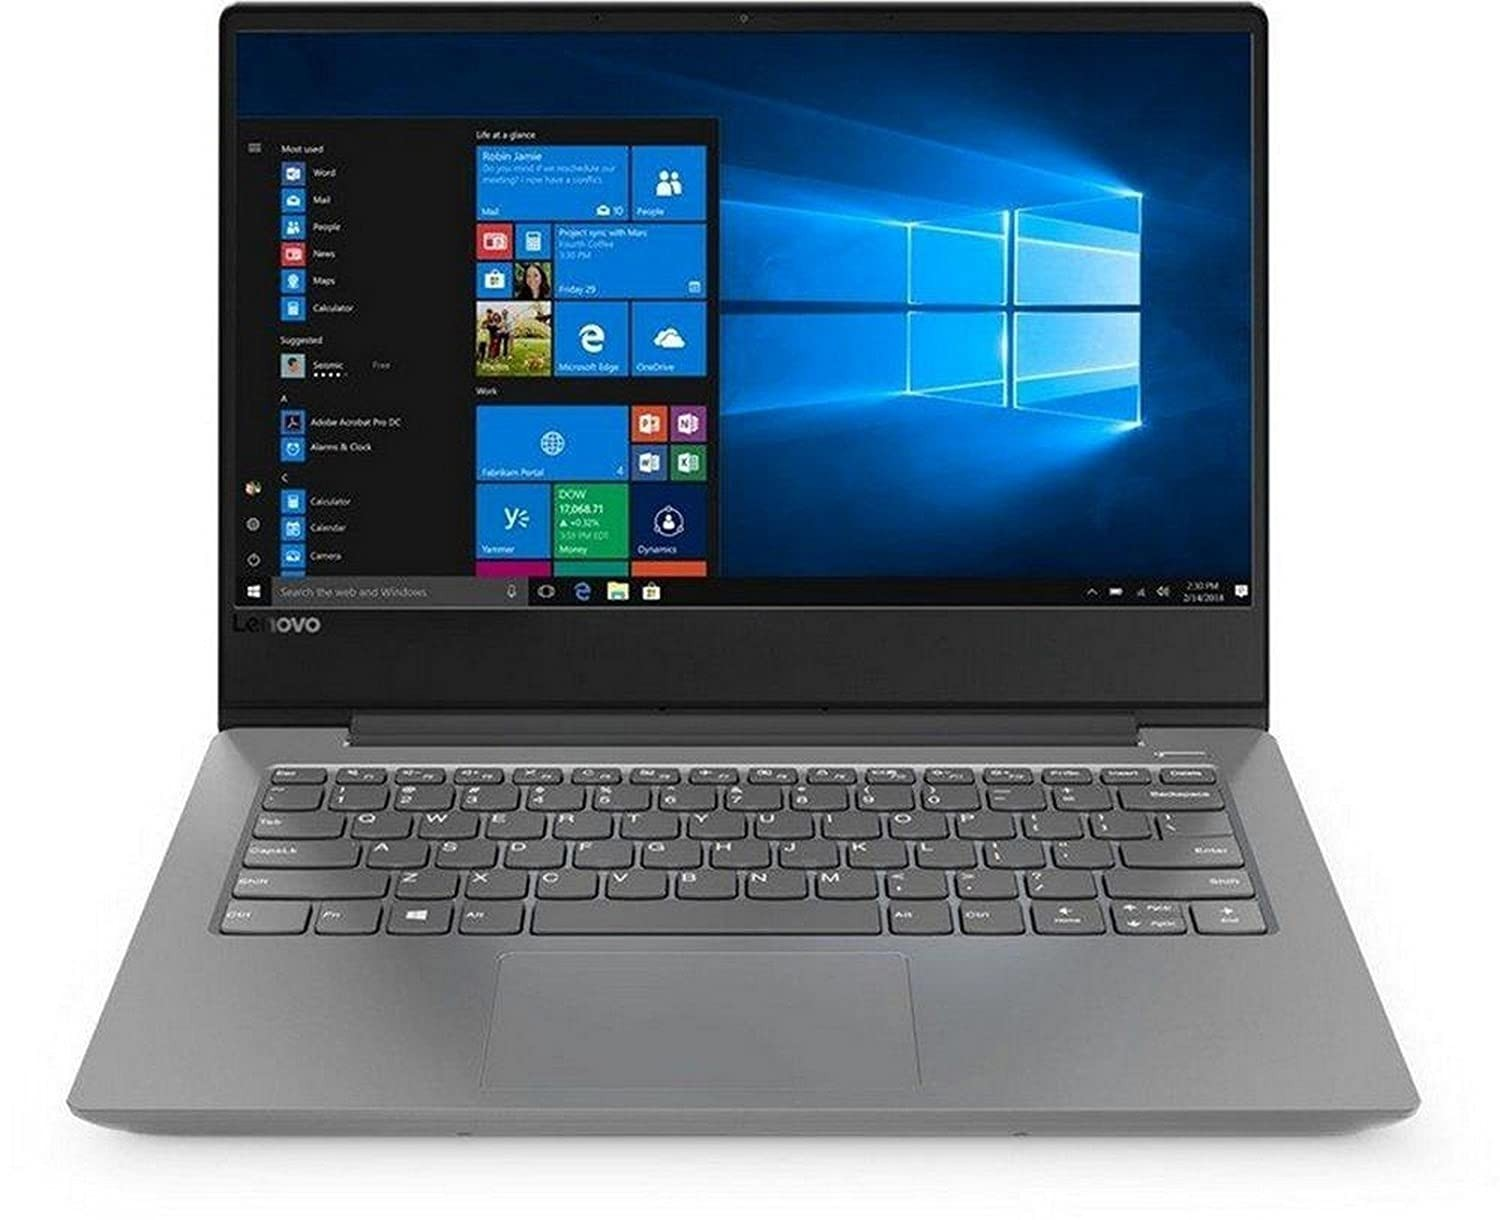 Refurbished laptops & desktops - Lenovo Ideapad 330S AMD A9 14-inch Thin and Light Laptop (4GB/1TB HDD/Windows 10 Home/Platinum Grey/ 1.6kg), 81F8001GIN